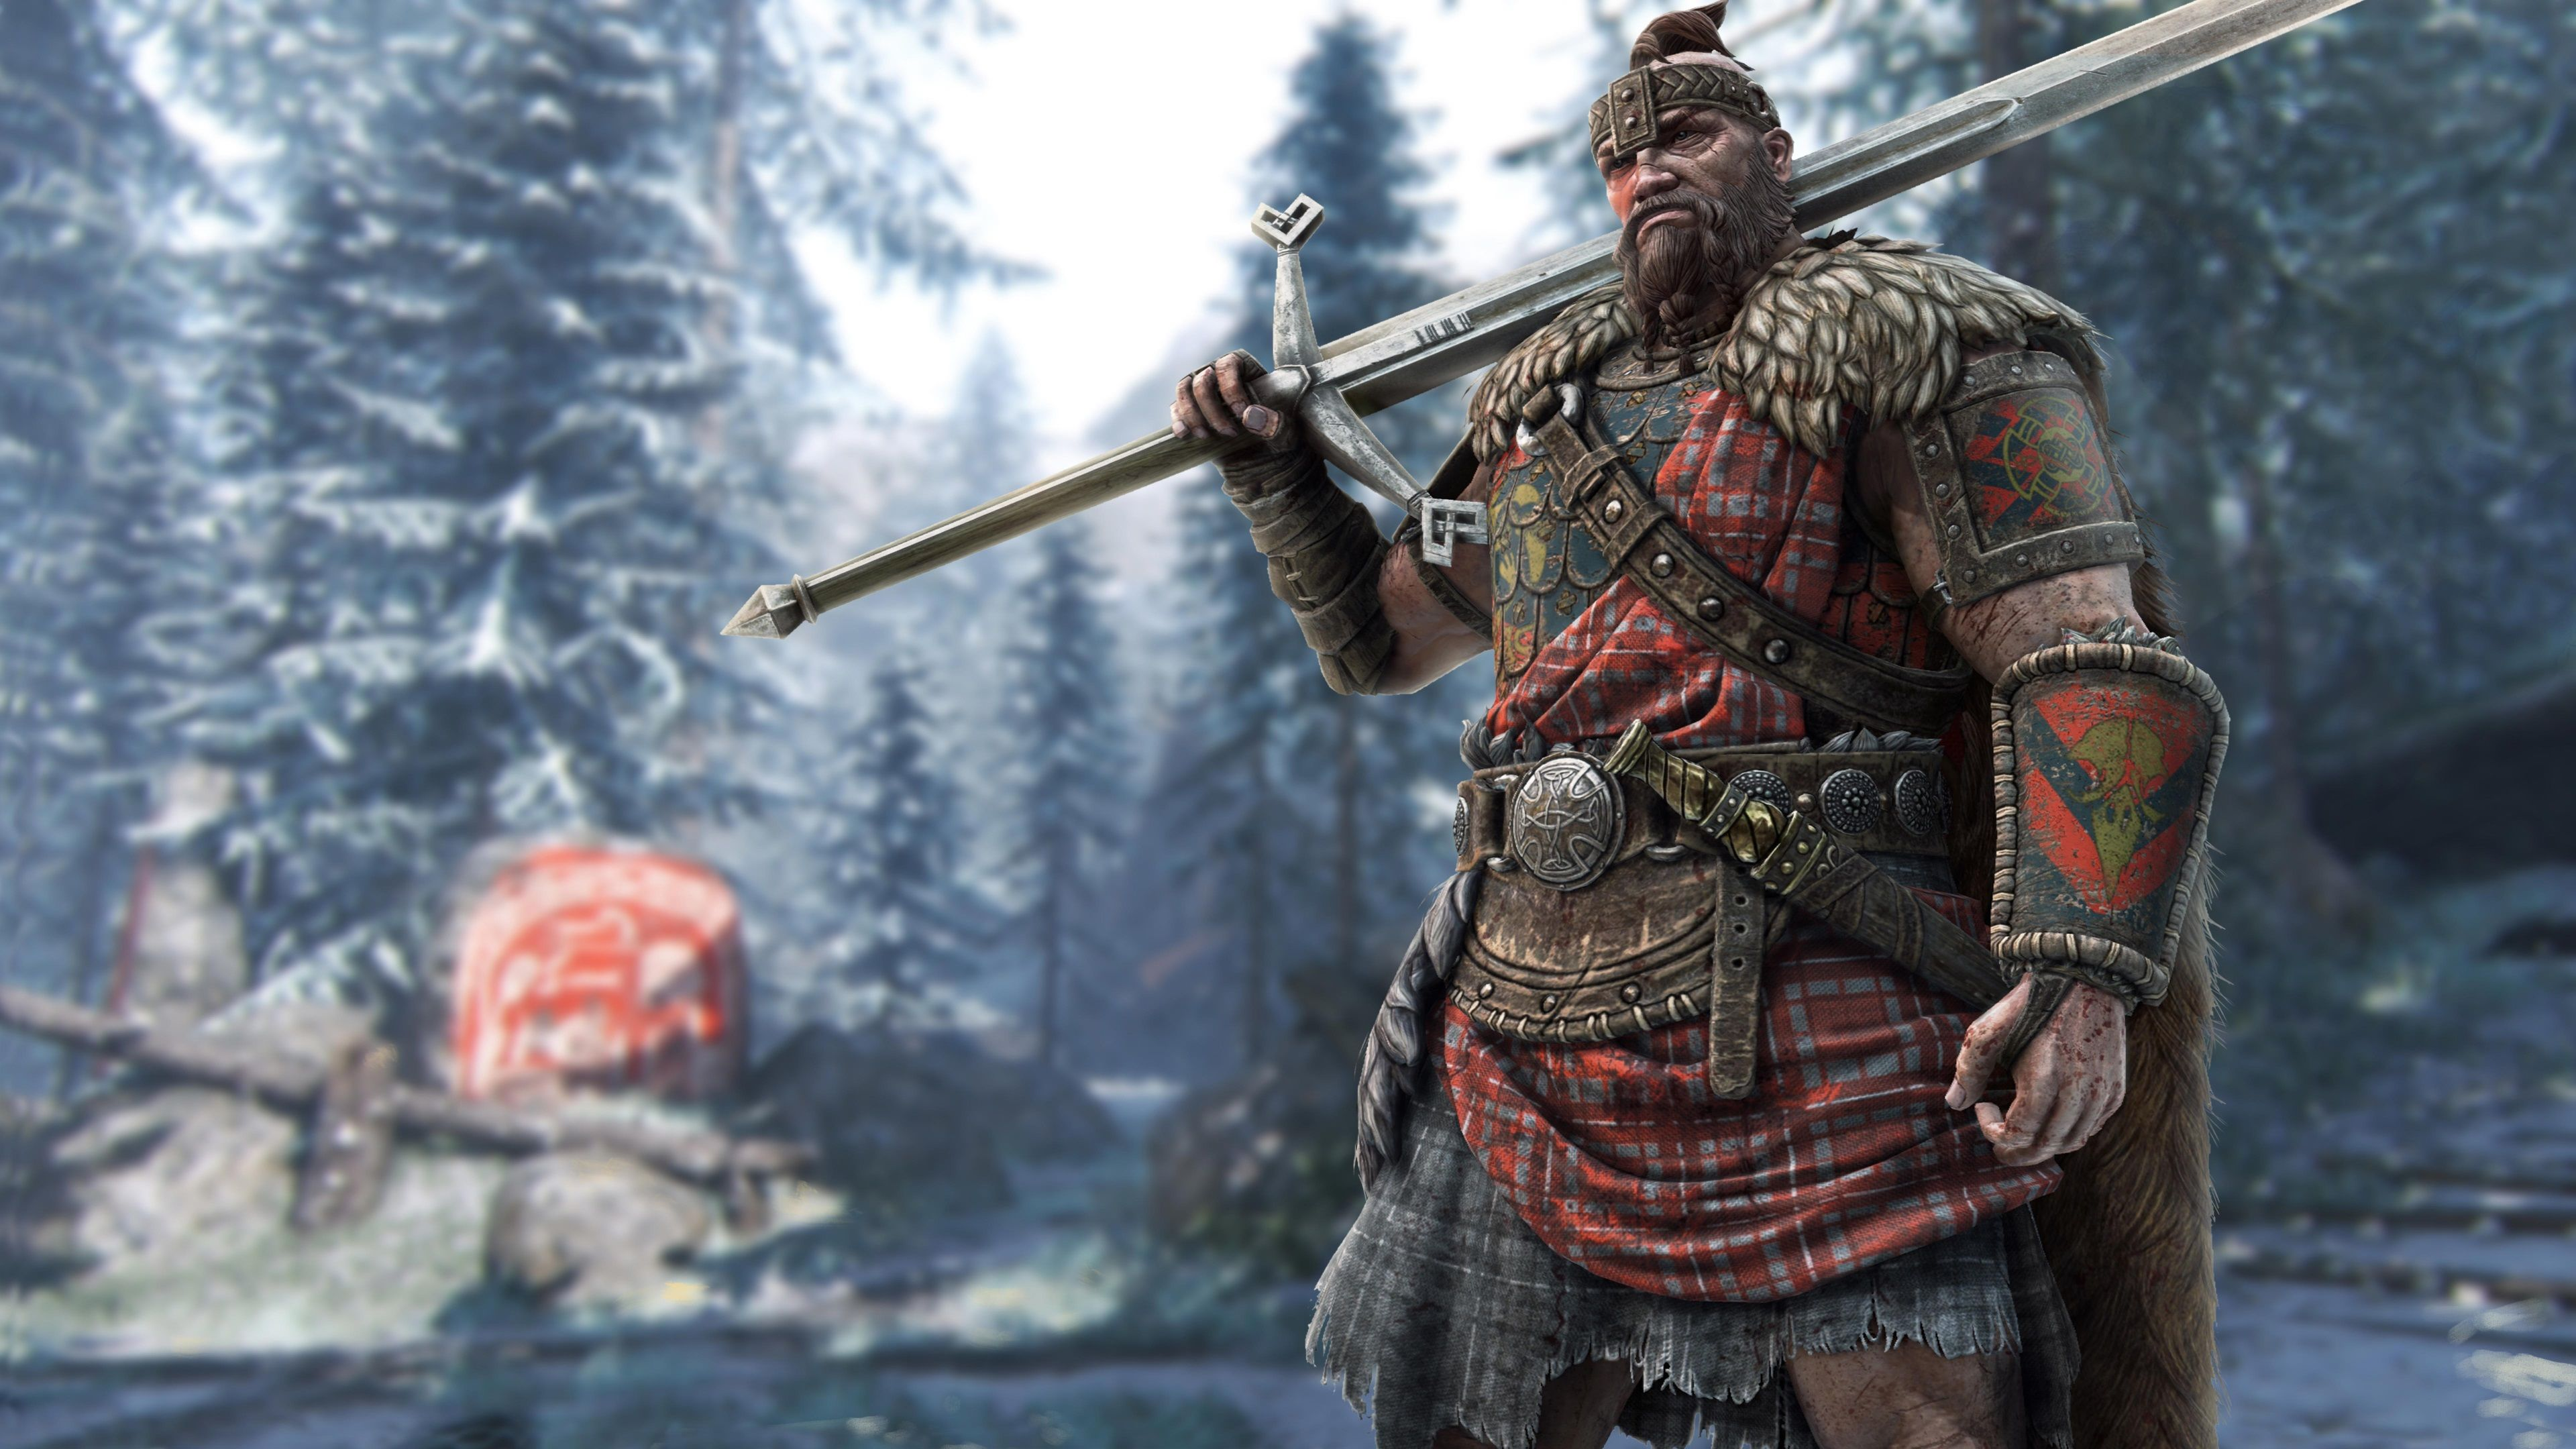 3840x2160 For Honor 4k High Resolution Wallpaper Widescreen For Honor Viking Viking Character Highlander